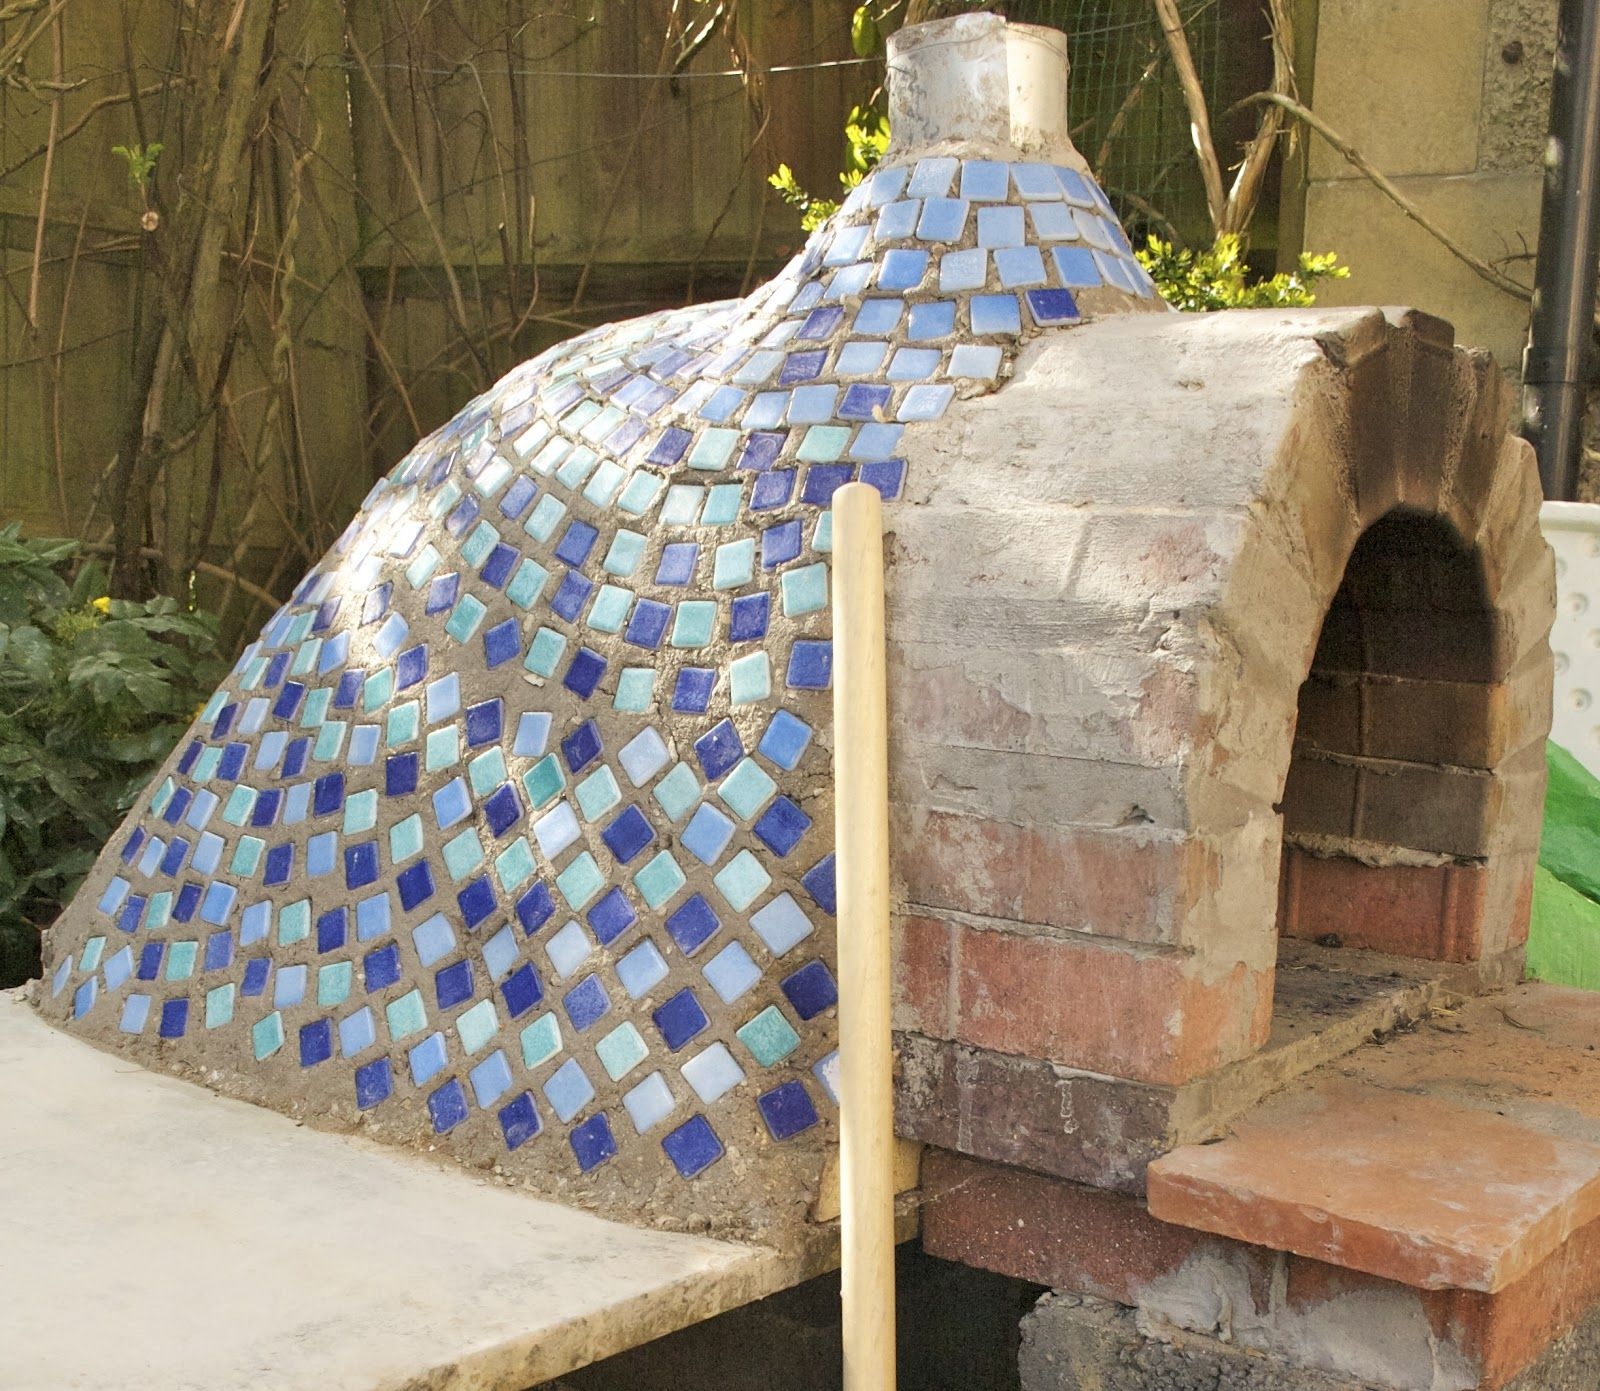 Outdoor Bread and Pizza Oven | Mosaic ideas | Pinterest | Oven ...